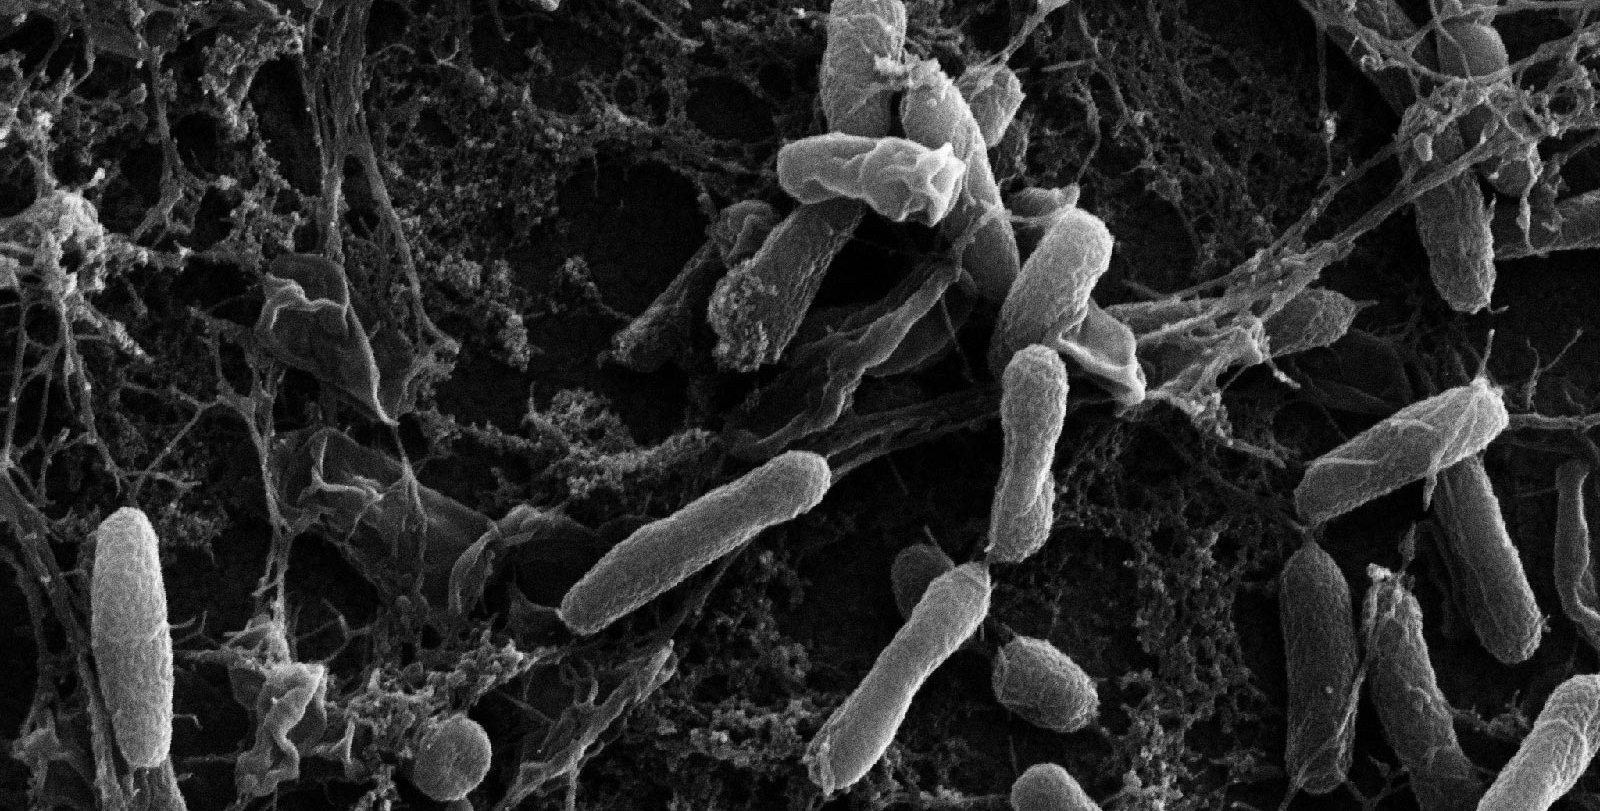 Black and white microscope image of pill-shaped bacteria